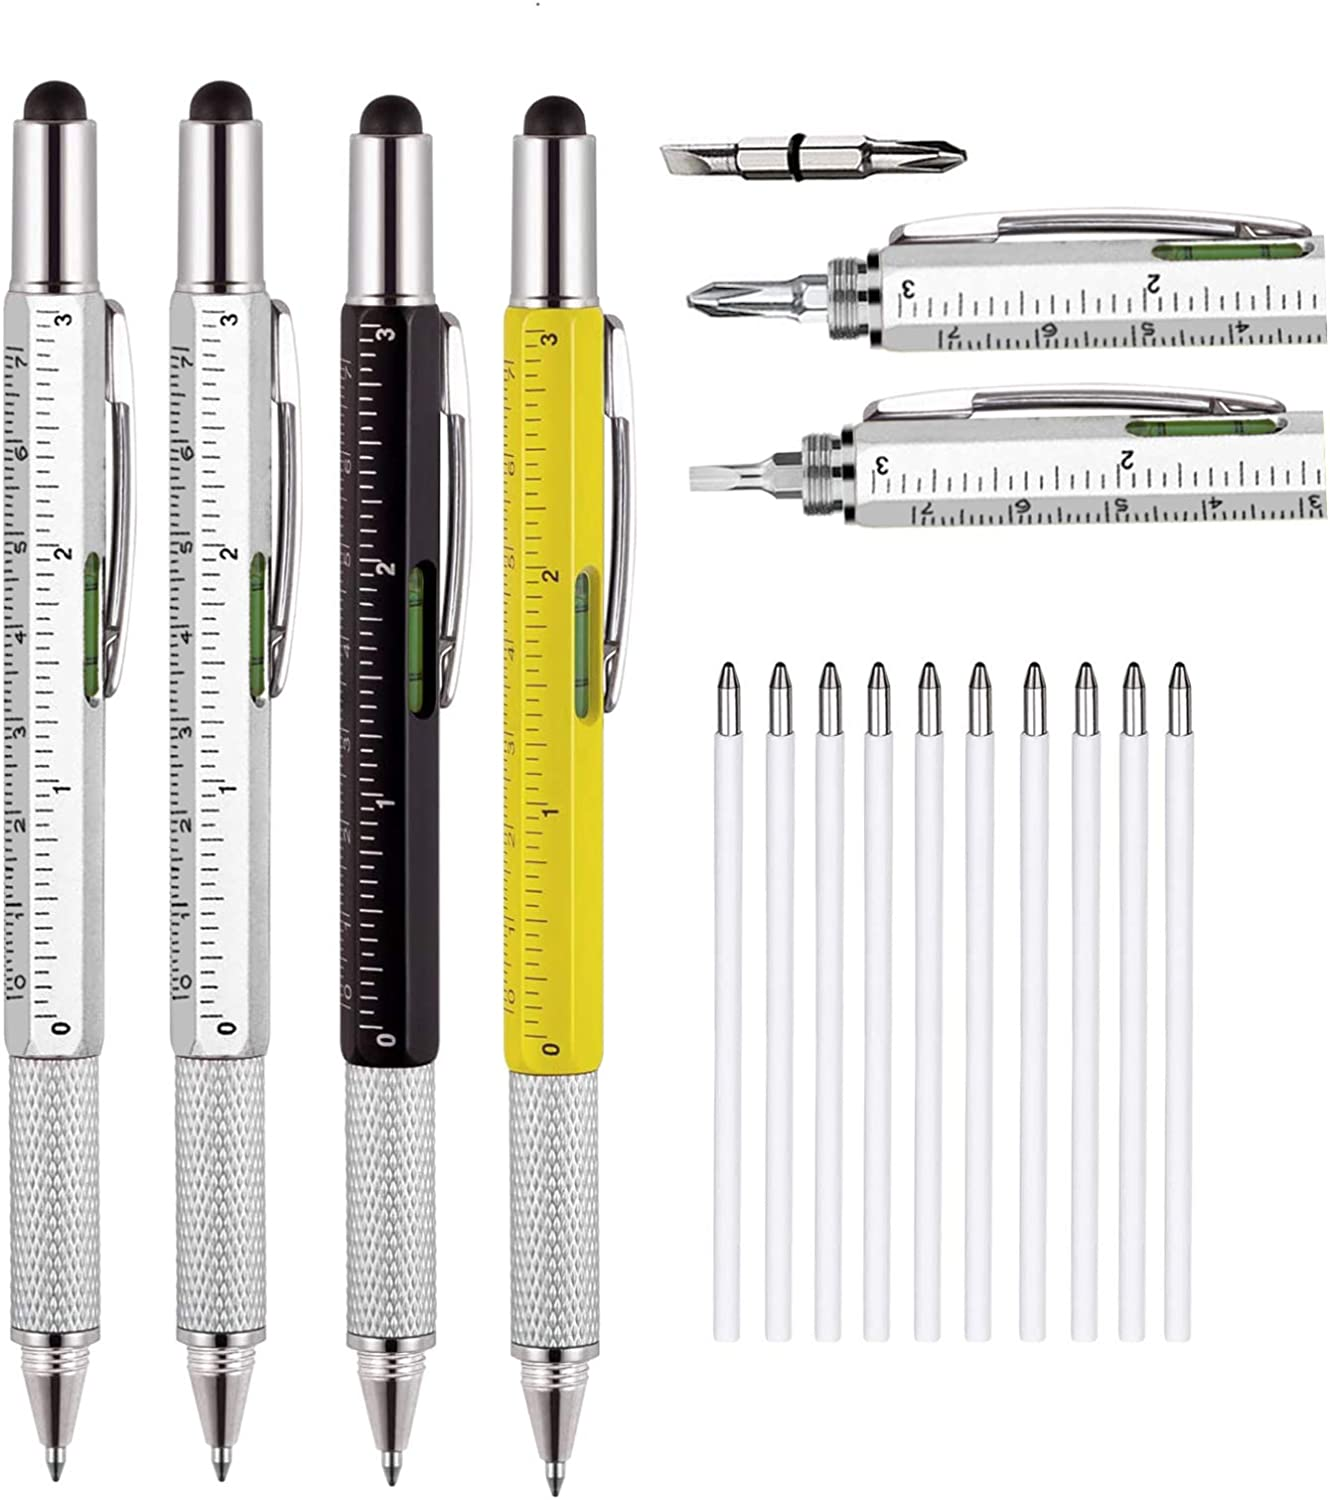 4 Pcs Unique Pen Gifts for Men, Multitool Women Pen Gift with Levelgauge, Screwdriver, Ballpoint Pen, Funny Gift for Christmas Father's Day Valentine Birthday Stylus (Two-Silver, Black,Light Yellow)